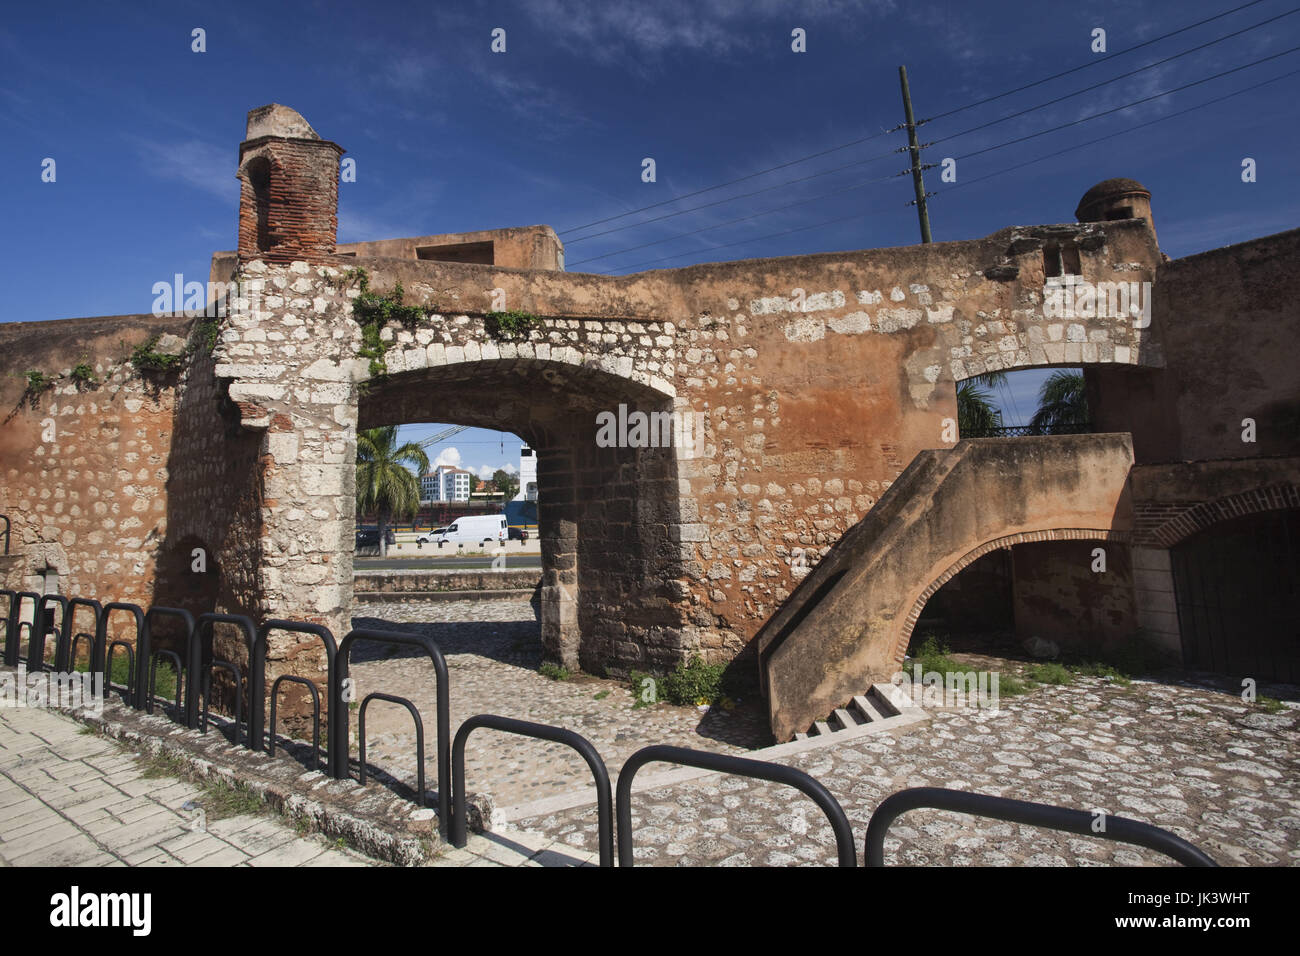 Dominican Republic, Santo Domingo, Zona Colonial, Puerta de San Diego, main entry gate into the old city, b.1571 - Stock Image